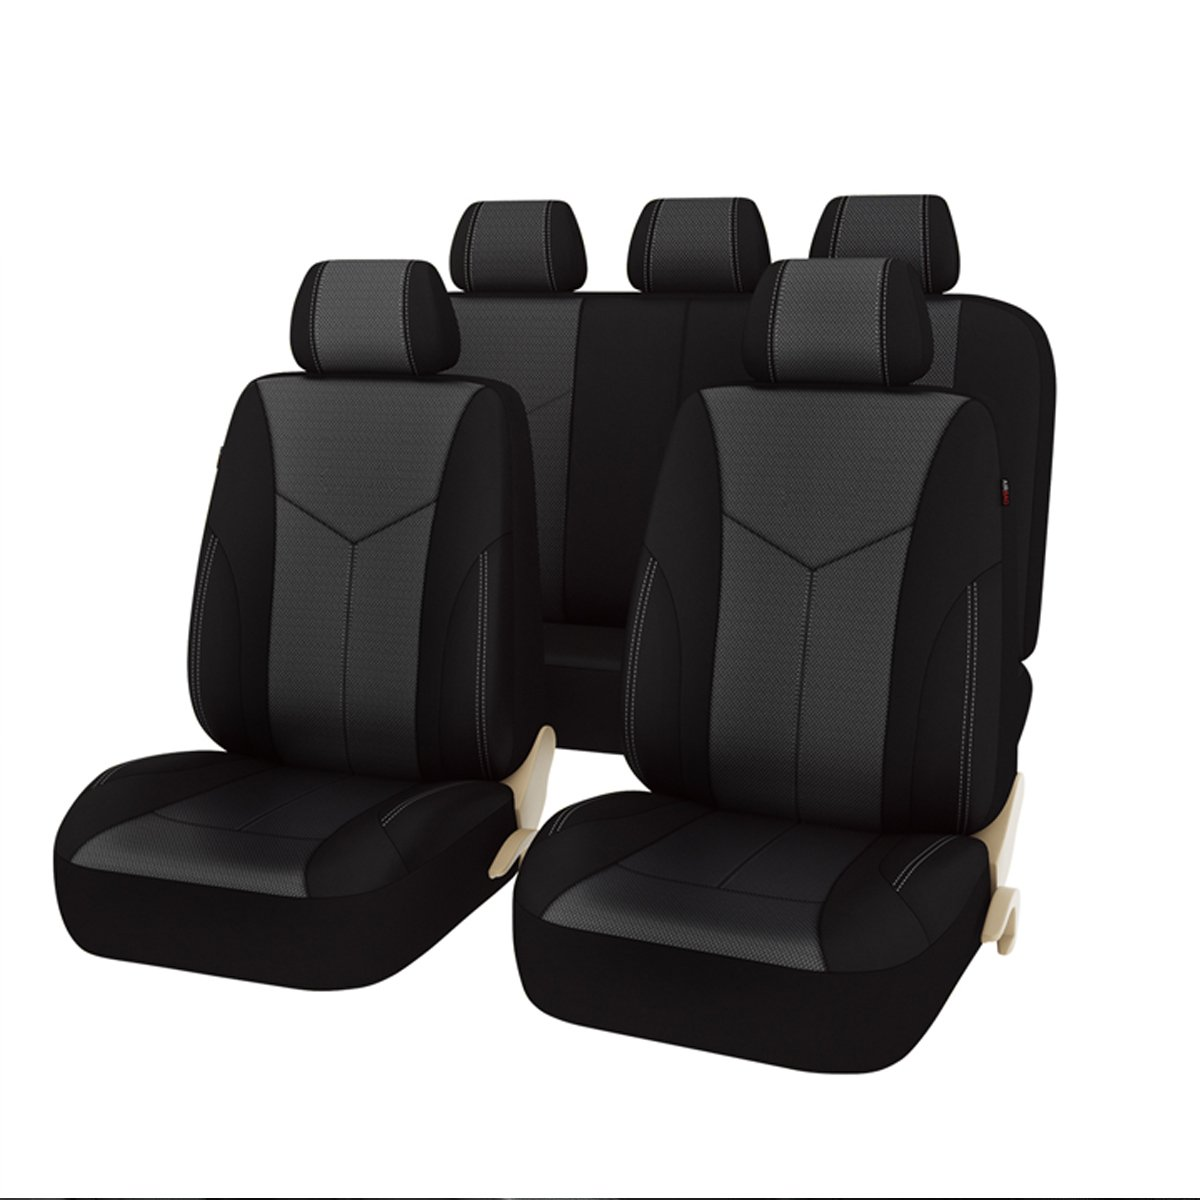 NEW ARRIVAL -Car Pass AIR FRESH Universal Seat Covers Set ,Airbag compatiable,Black with Black